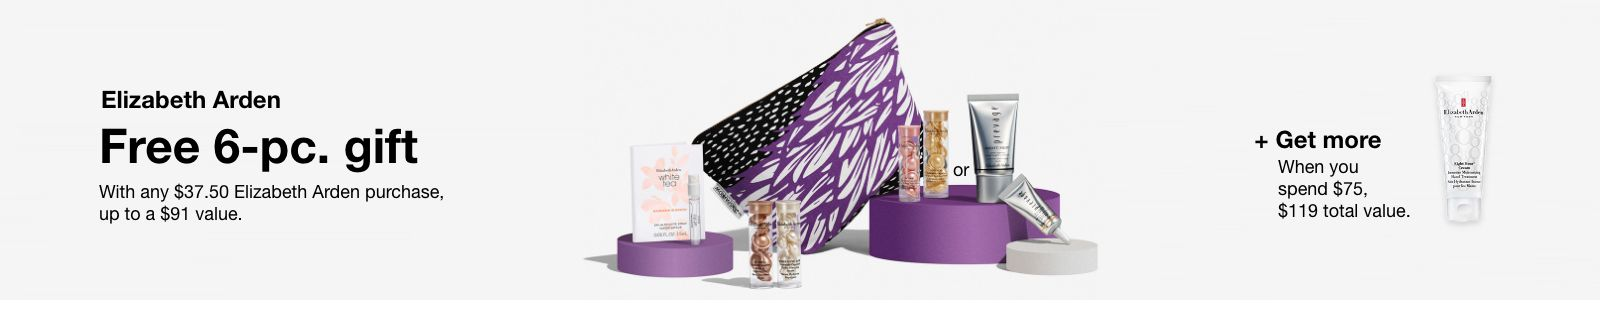 Elizabeth Arden, Free 6-pieces, gift, With any $37.50 Elizabeth Arden purchase, up to a $91 value